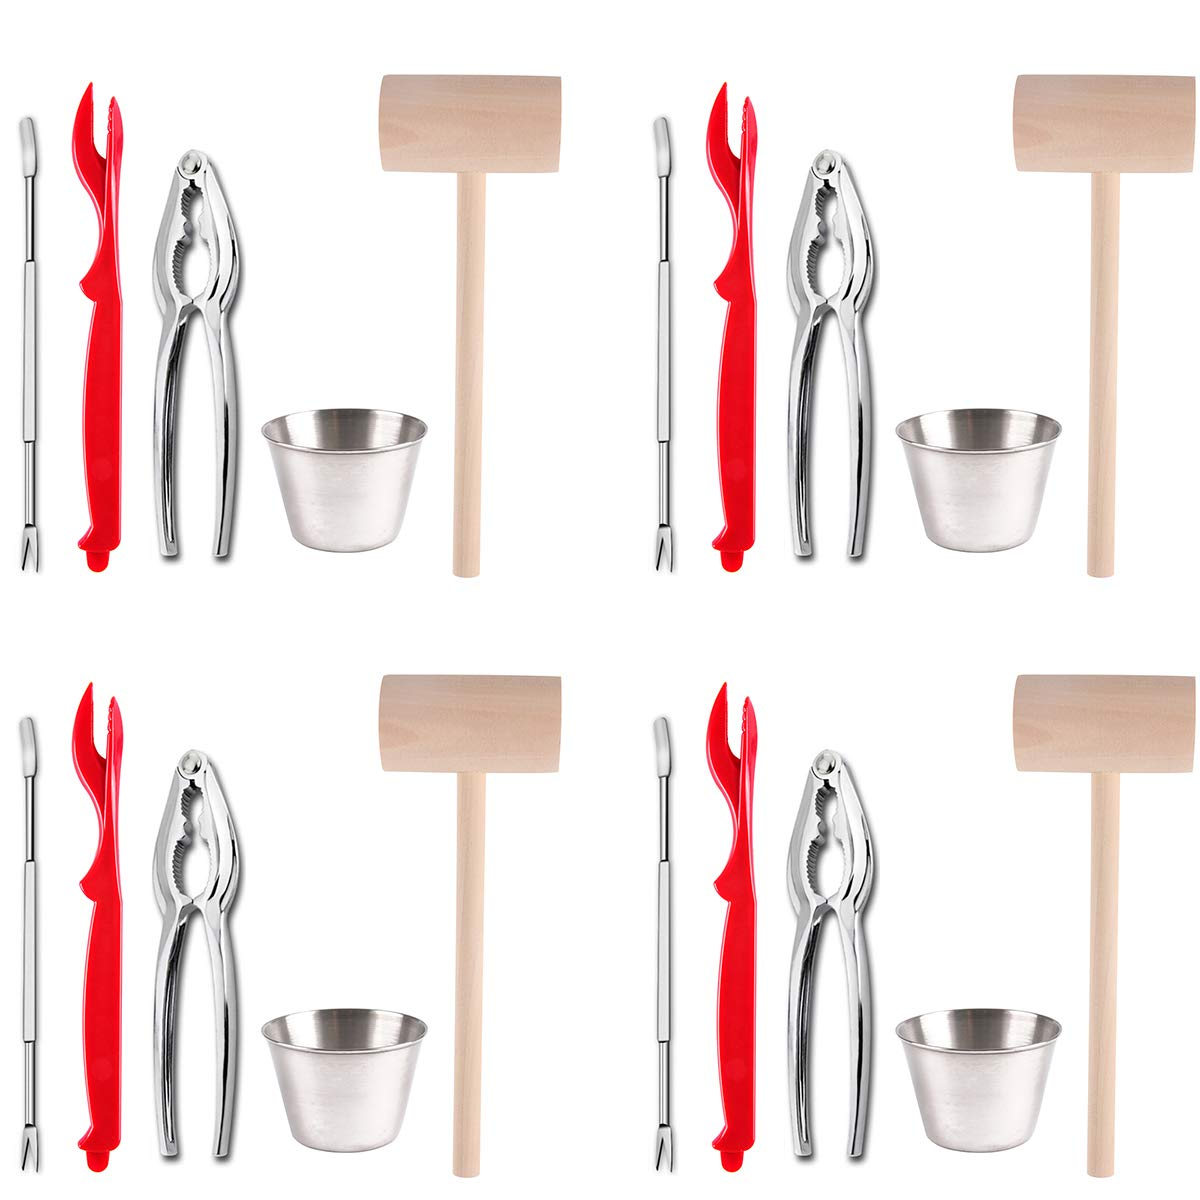 Artcome 22 Piece Seafood Tools Set for 4 People including 4 Lobster Crab Crackers 4 Lobster Shellers 6 Seafood Forks 4 Sauce Cups and 4 Lobster Crab Mallets by Artcome